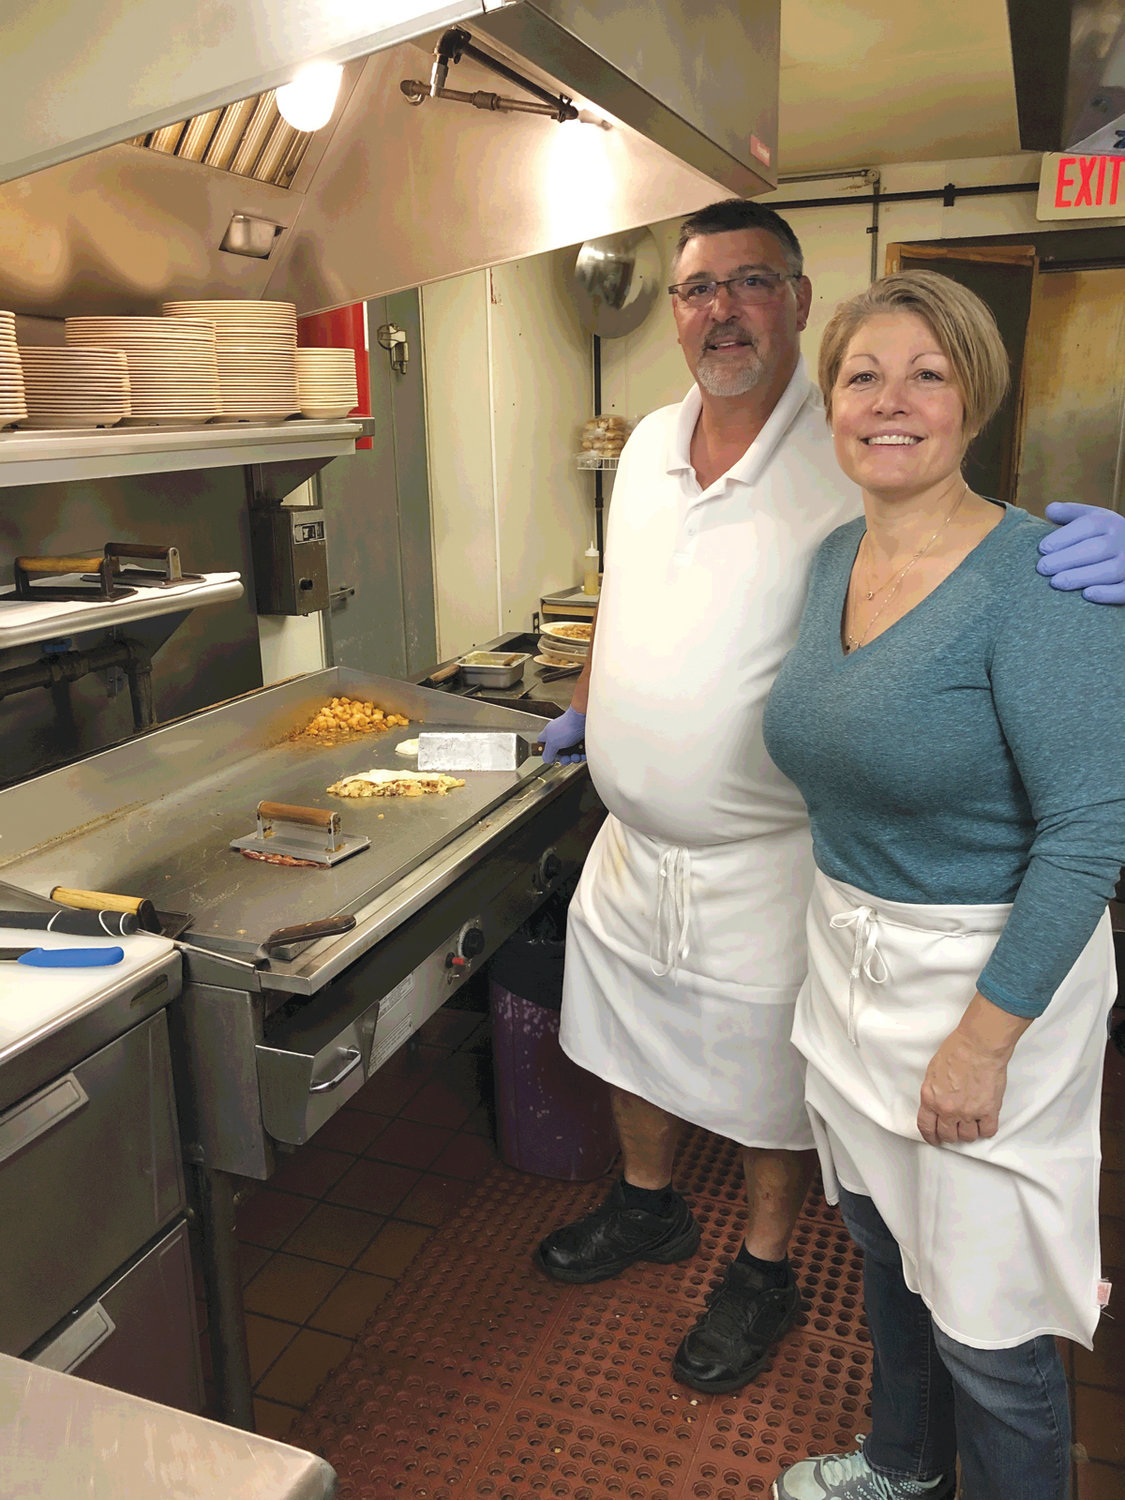 ORDER UP: Co-owners of PB&J's, Bill Landry and Patti Bacon, are ready to prepare a take-out breakfast for Carryout Wednesday.